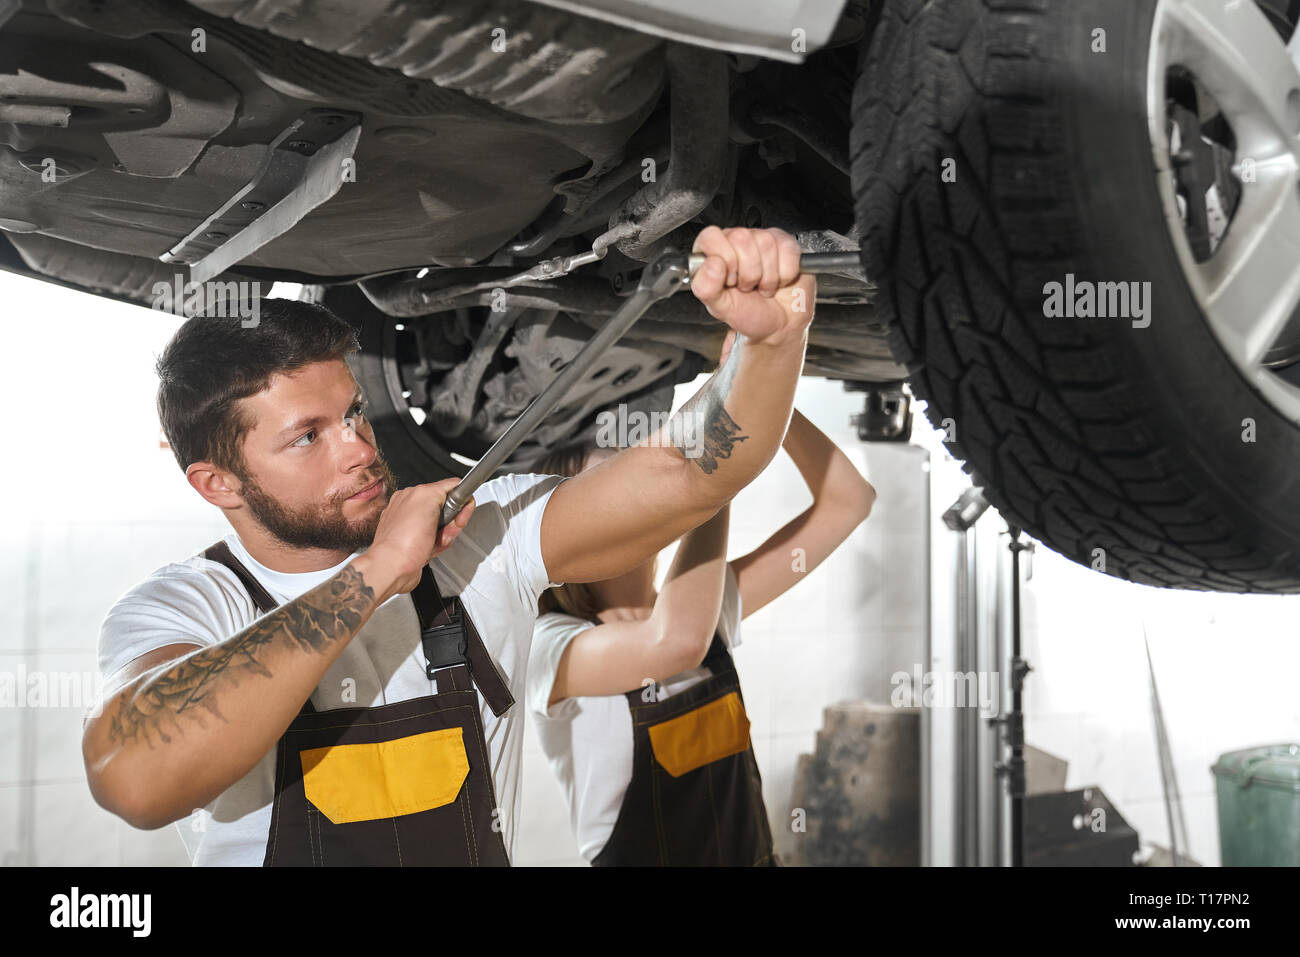 Undercarriage Car Stock Photos Undercarriage Car Stock Images Alamy